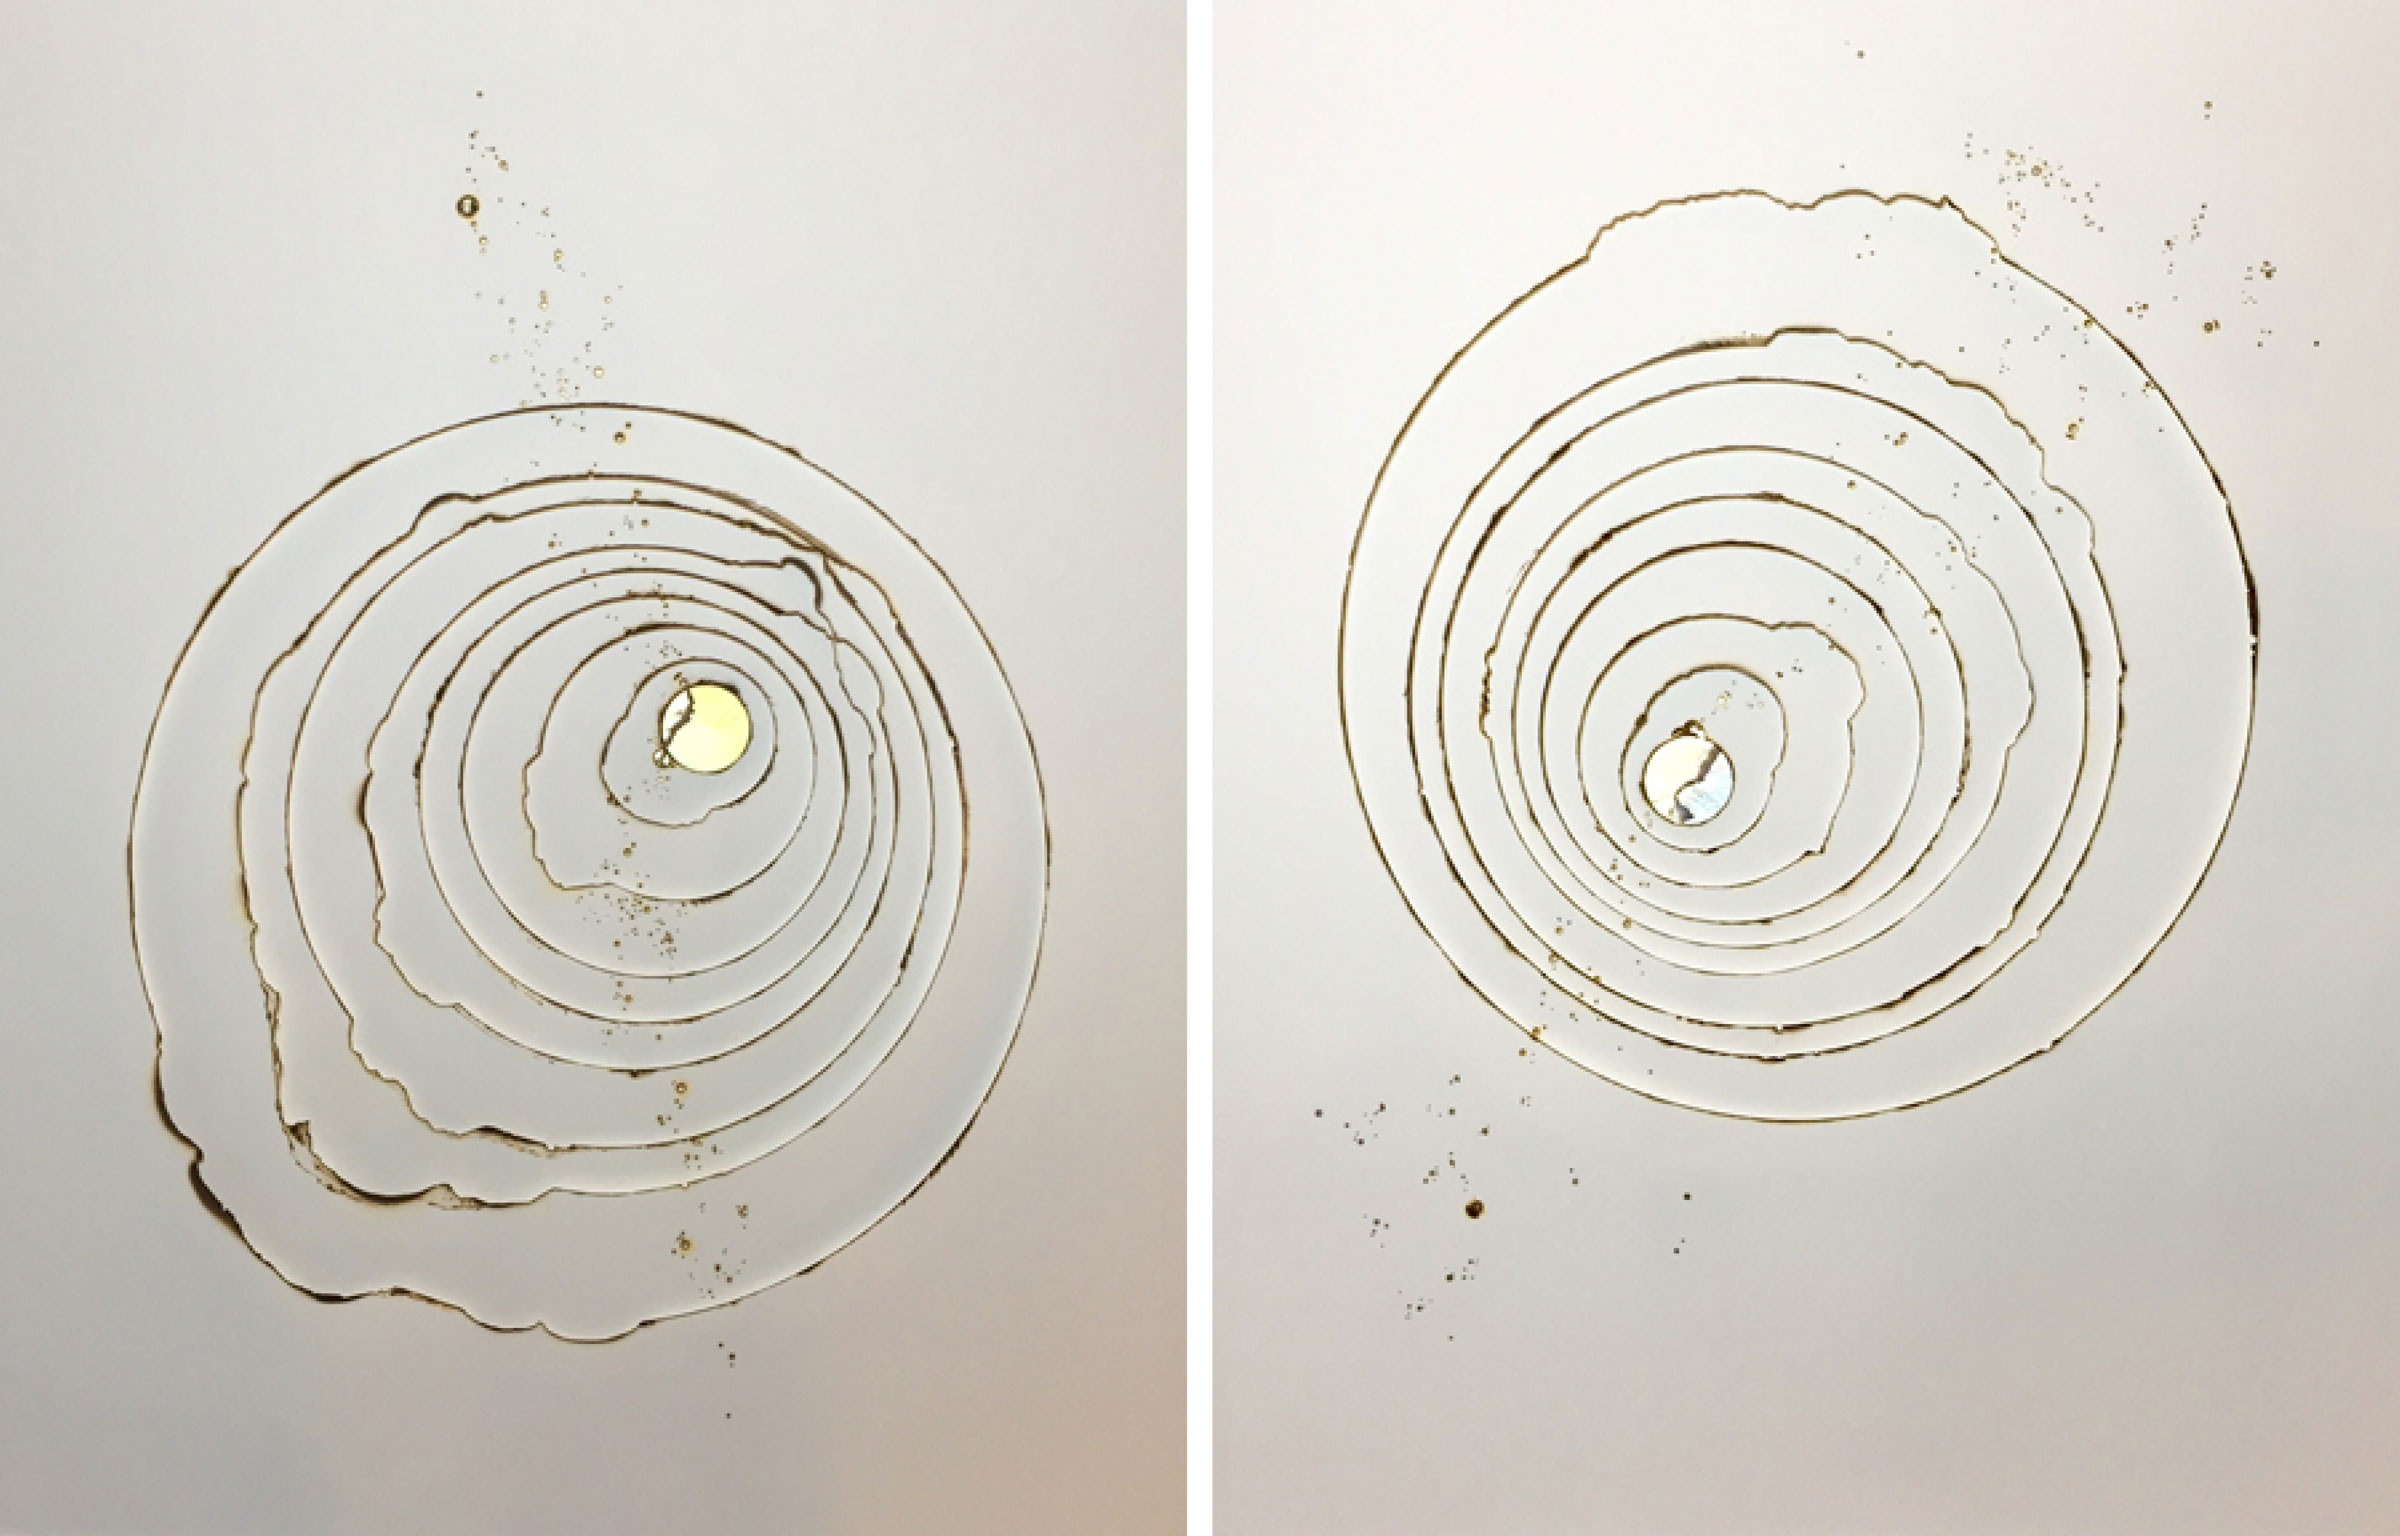 Kelly M. O'Brien,  Playing With Fire No. 14  and  No. 15 . Paper, gold leaf, flame. 30 x 24 inches each. ©2015.